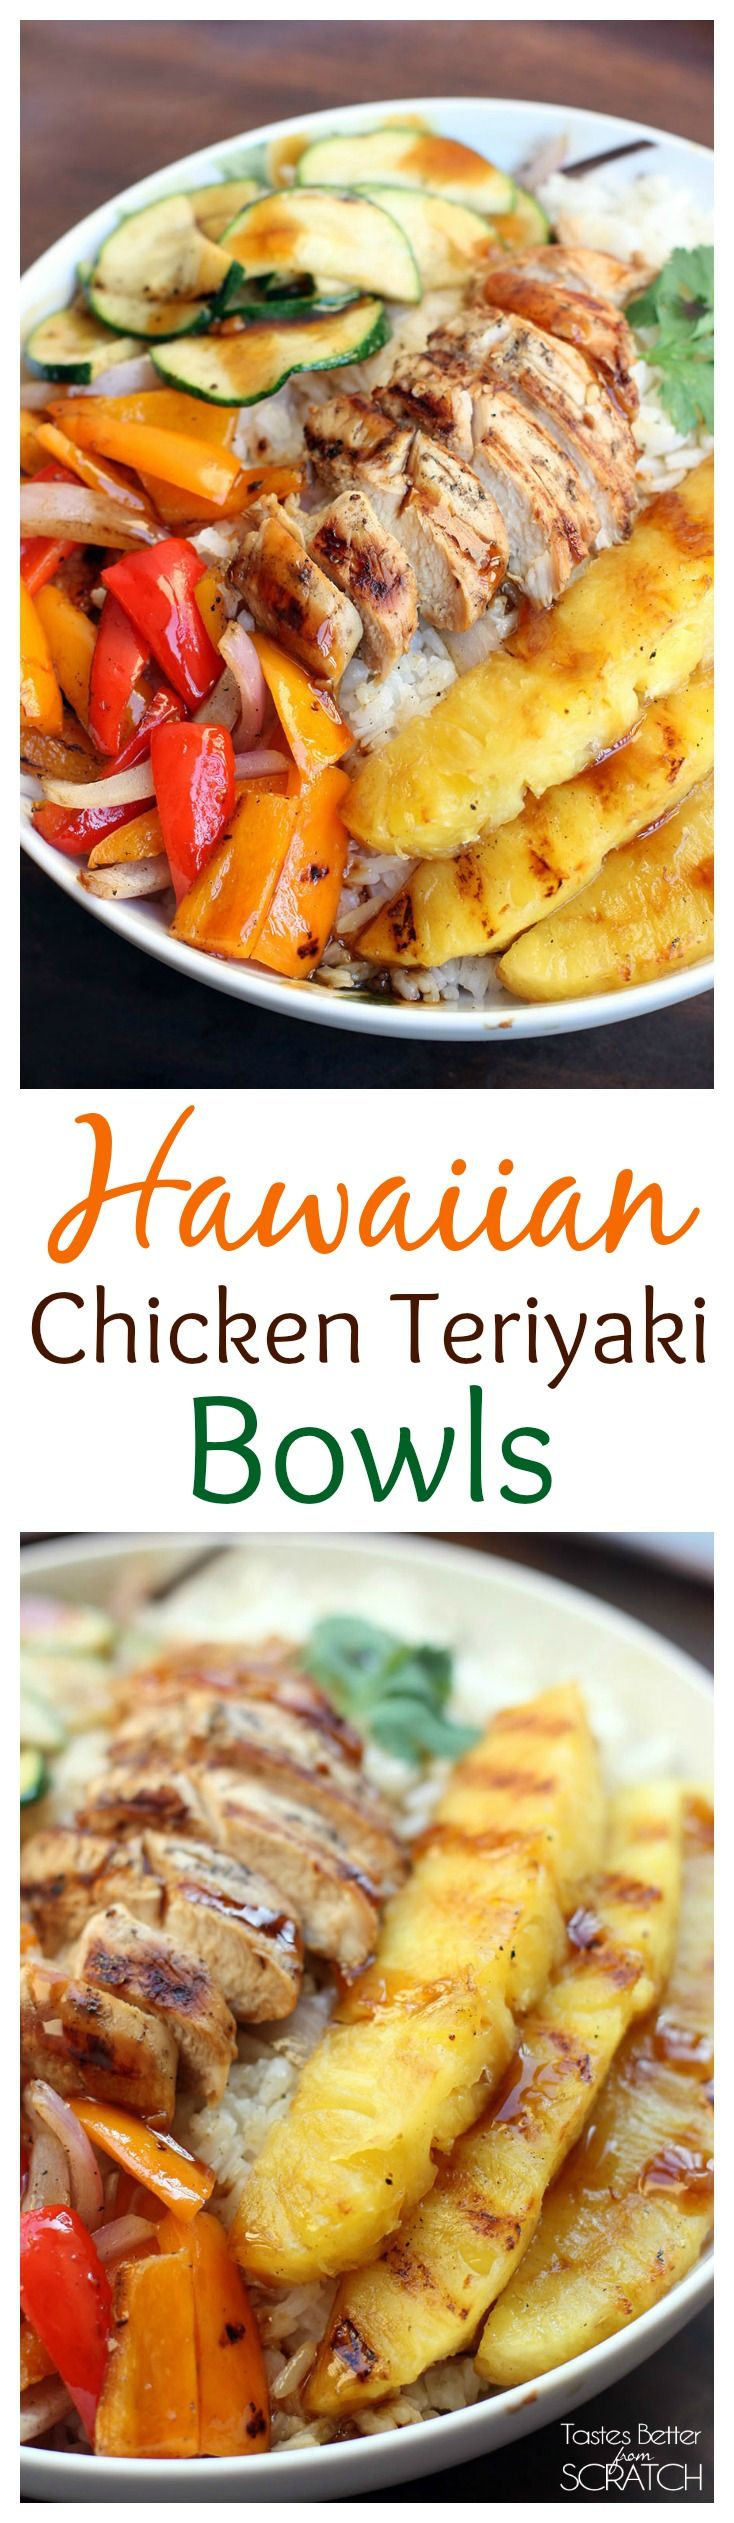 Grilled Hawaiian Chicken Teriyaki Bowls by tastesbetterfromscratch: Made with coconut rice and grilled pineapple. #Teriyaki_Bowl #Chicken #Hawaiian